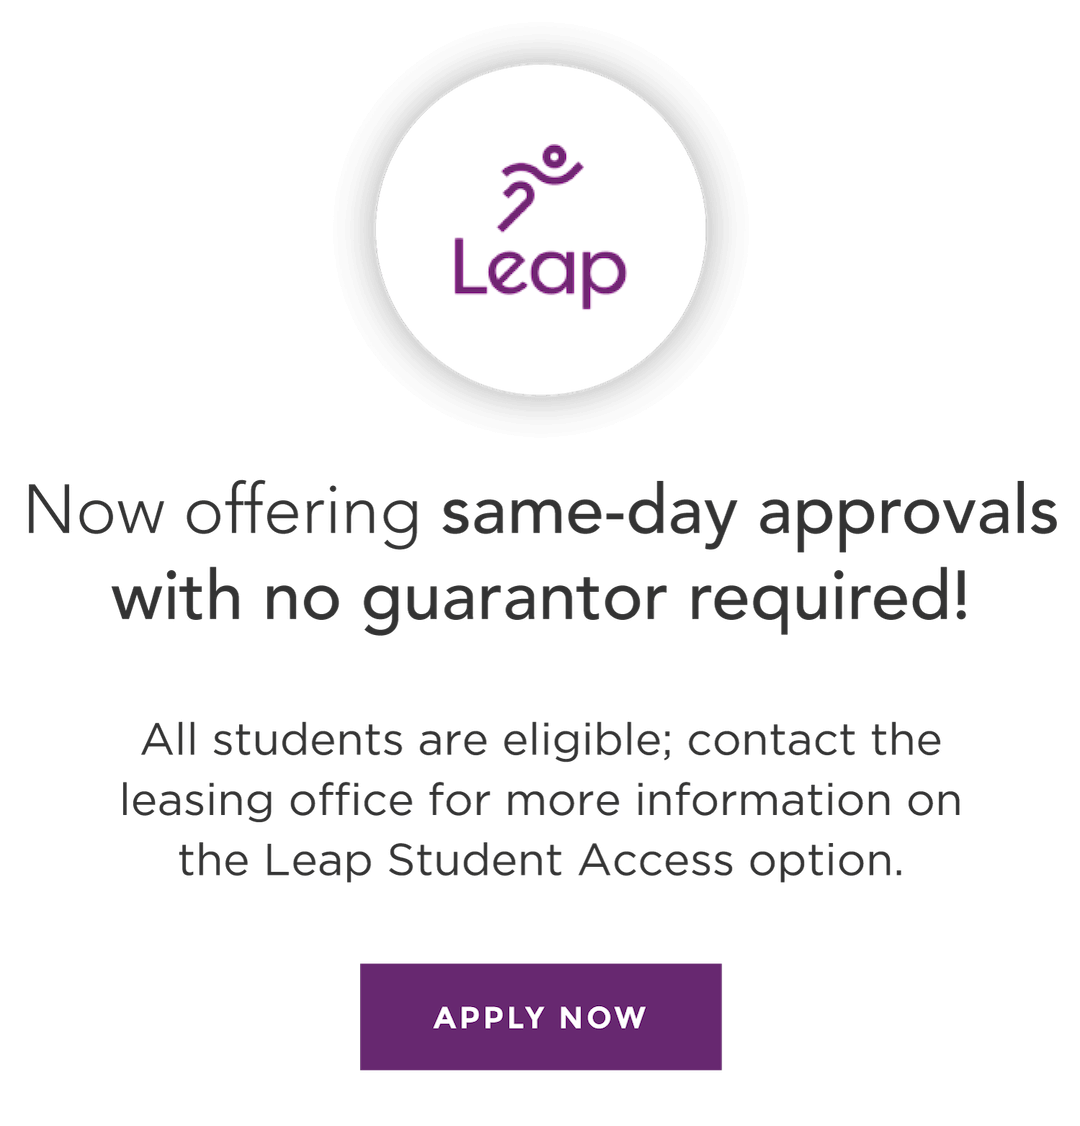 Now offering same-day approvals with no guarantor required! Apply Now.